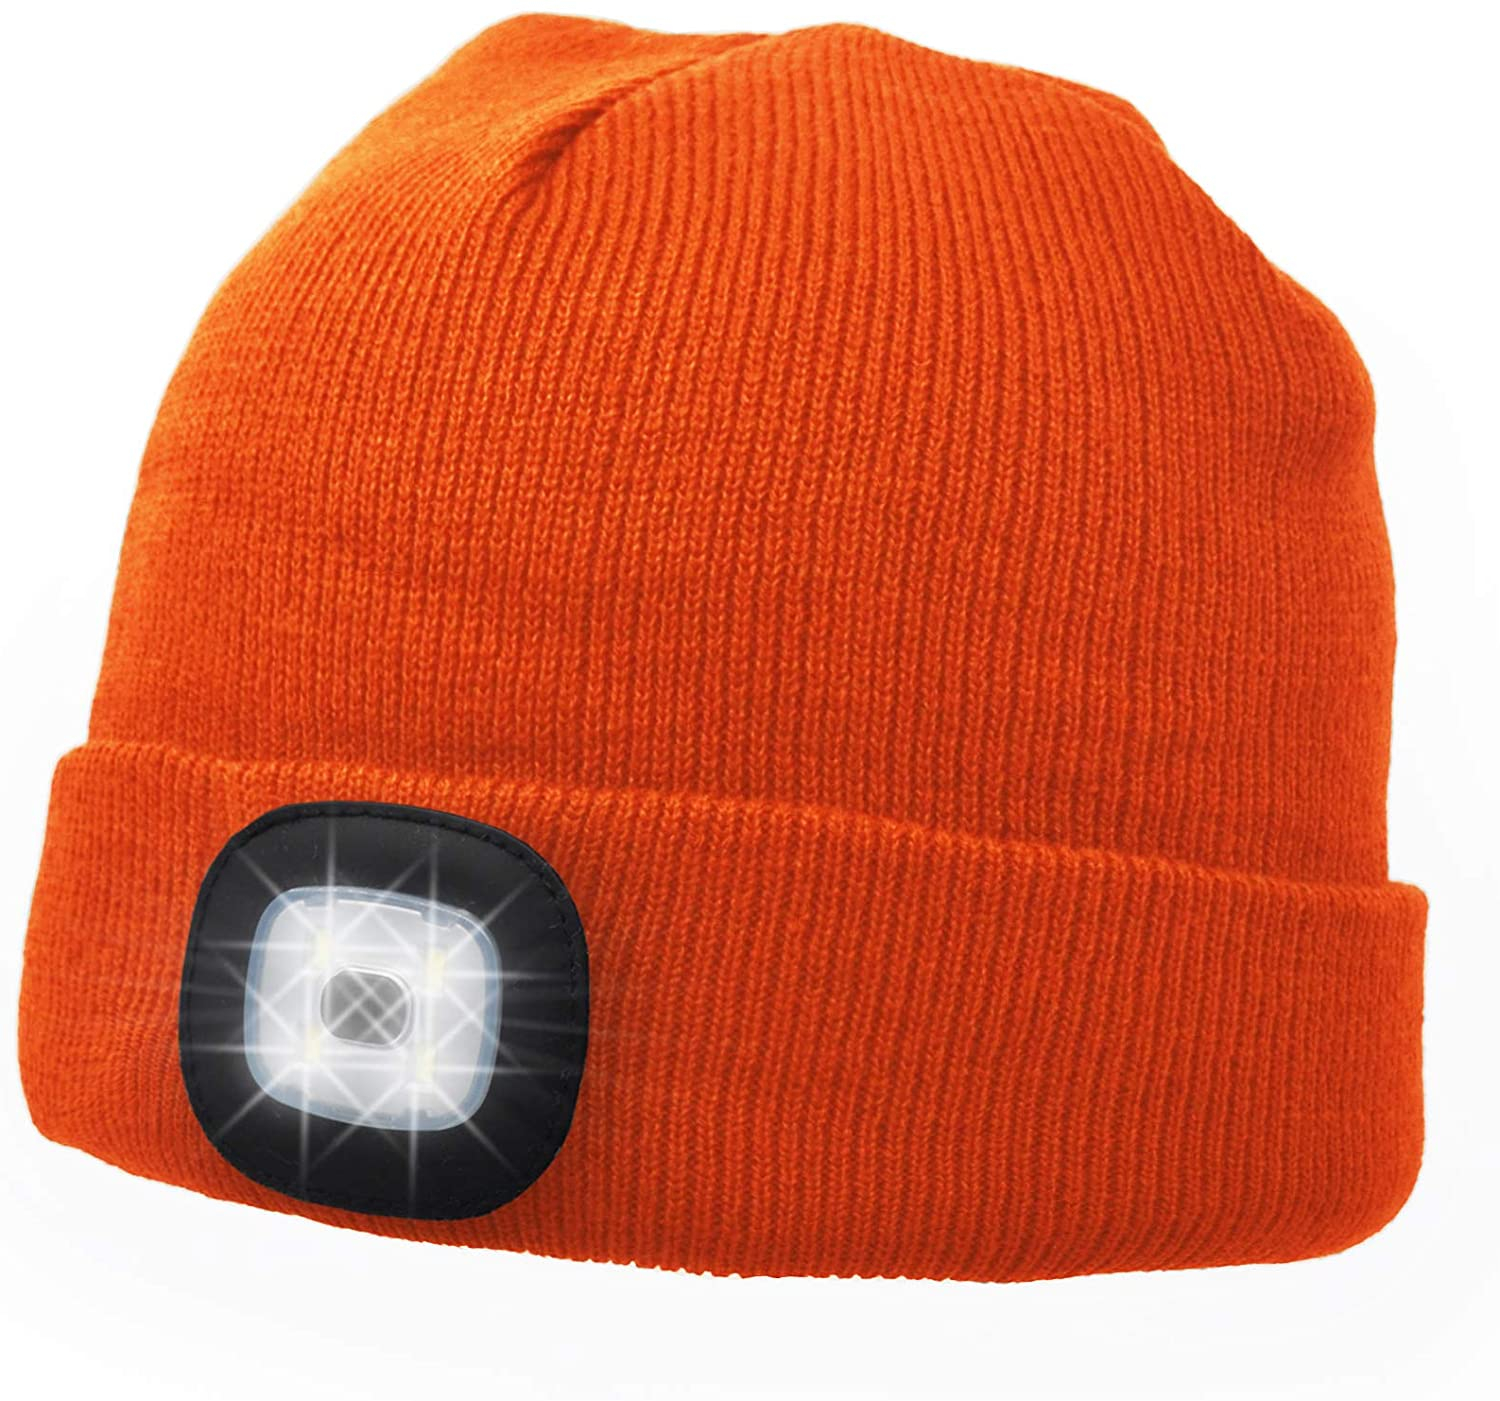 UltraKey LED Headlamp Beanie, Outdoor LED Light Hat for Camping Sports Jogging Walking Grilling Party Holiday, Hat with Light